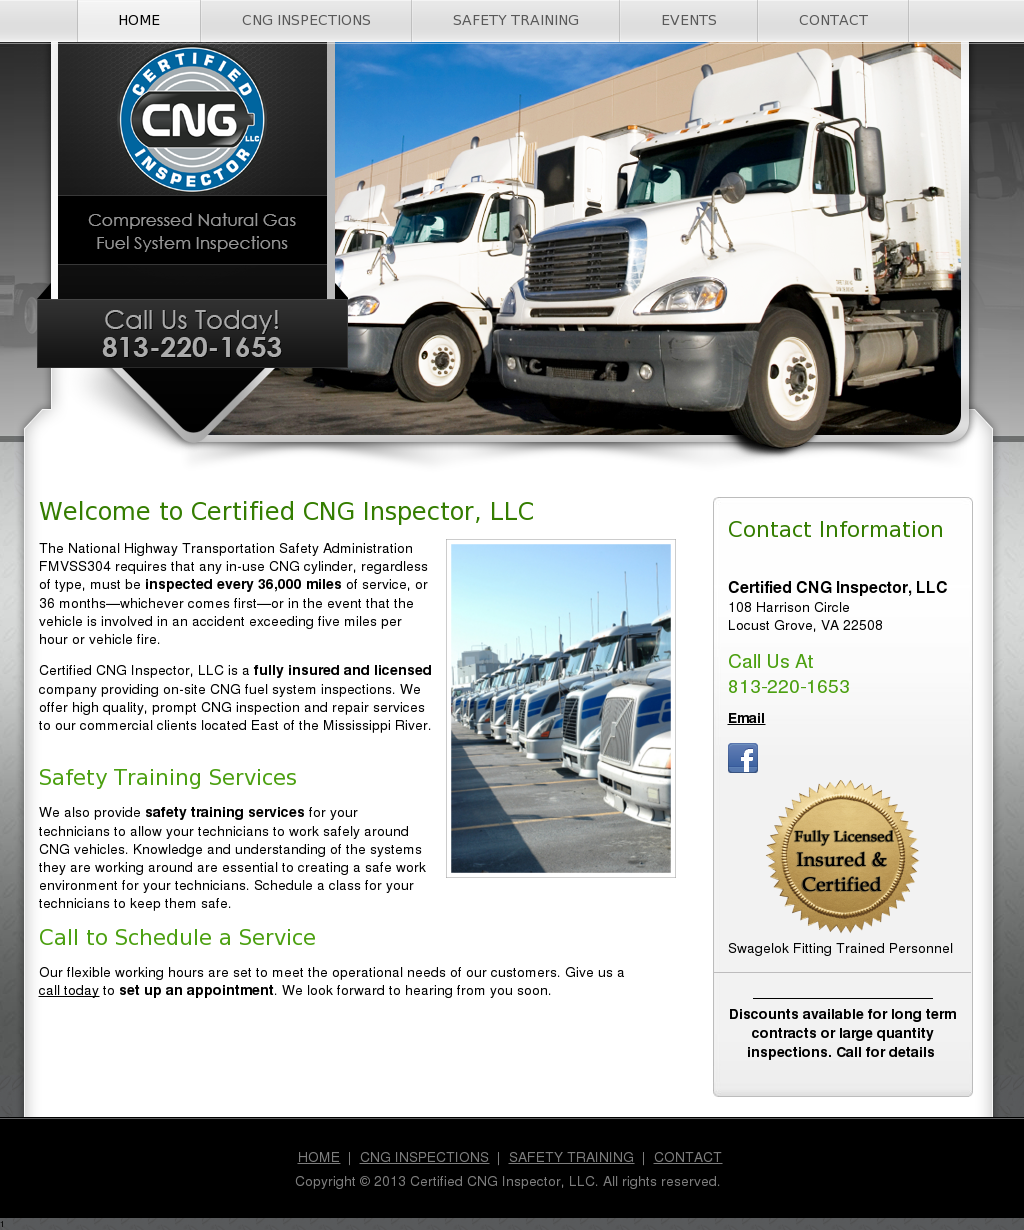 Certified Cng Inspector Competitors, Revenue and Employees - Owler